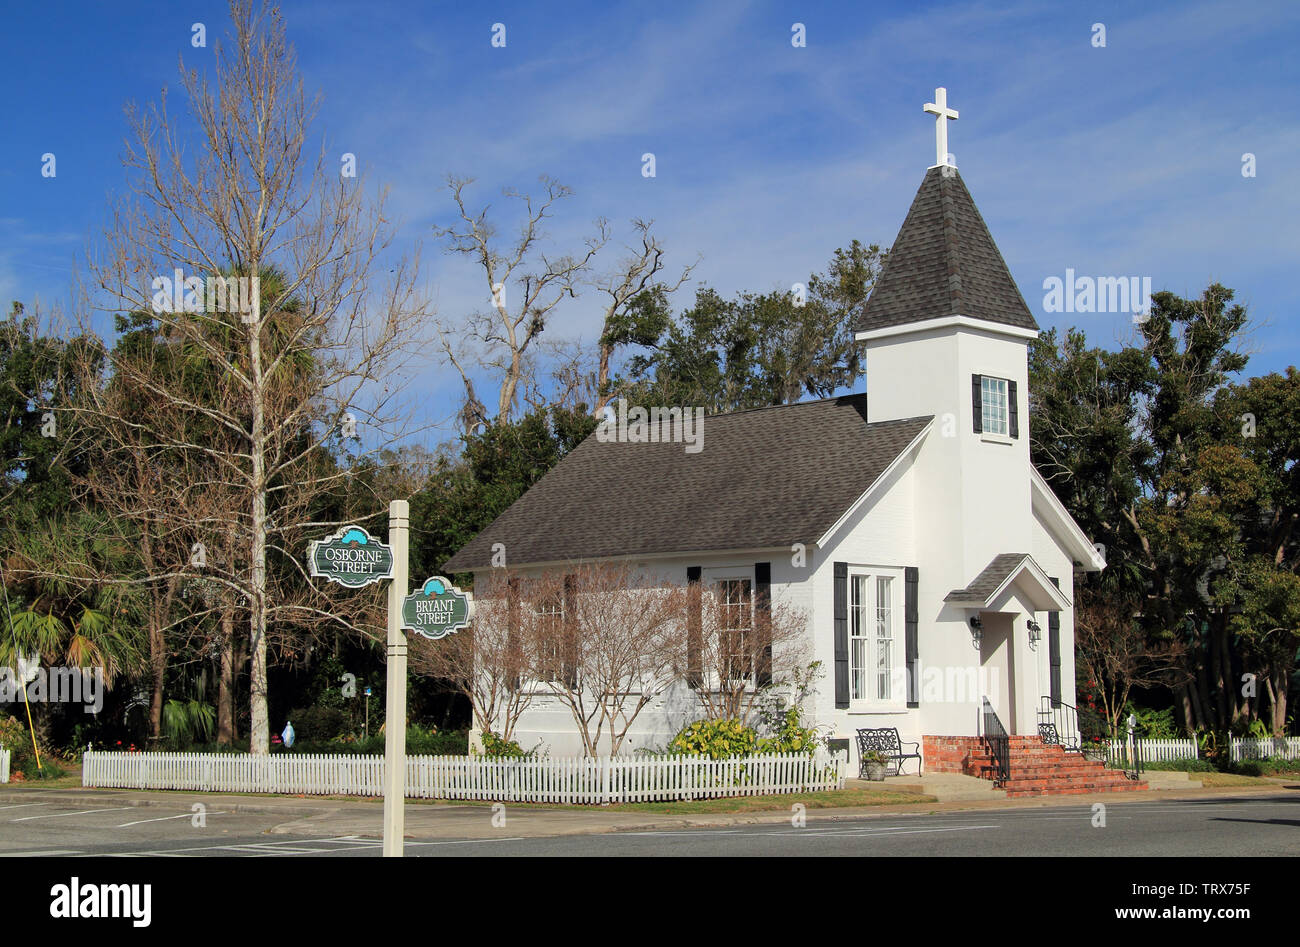 Our Lady Star of the Sea Catholic Church is one of the oldest religious structures located within the St. Marys Historic District in Georgia Stock Photo